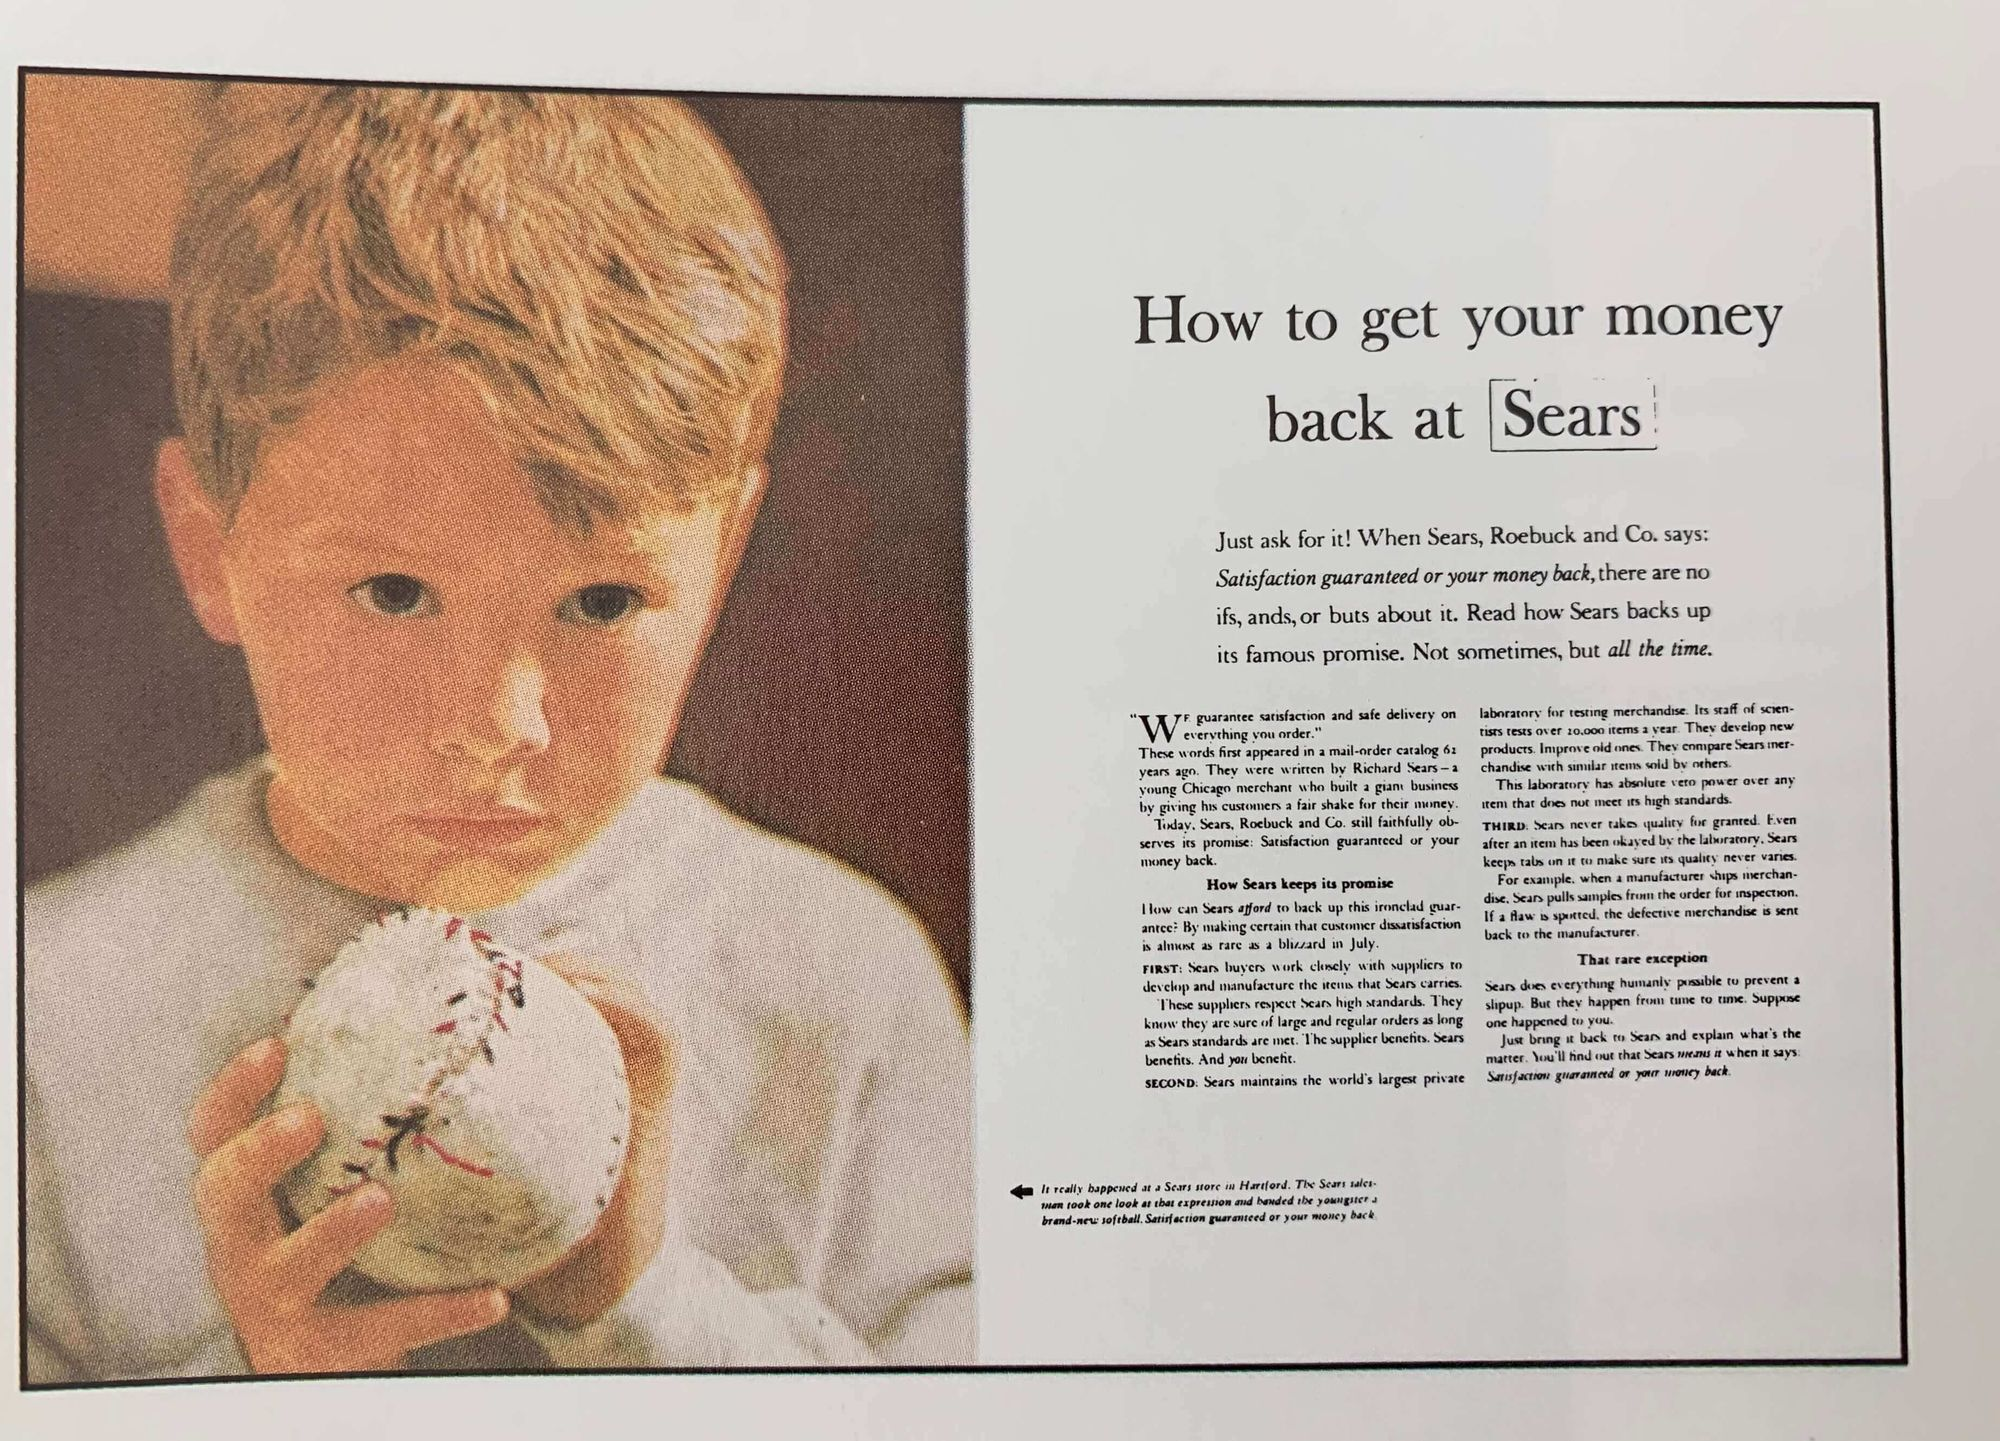 Sears' Ad by Ogilvy